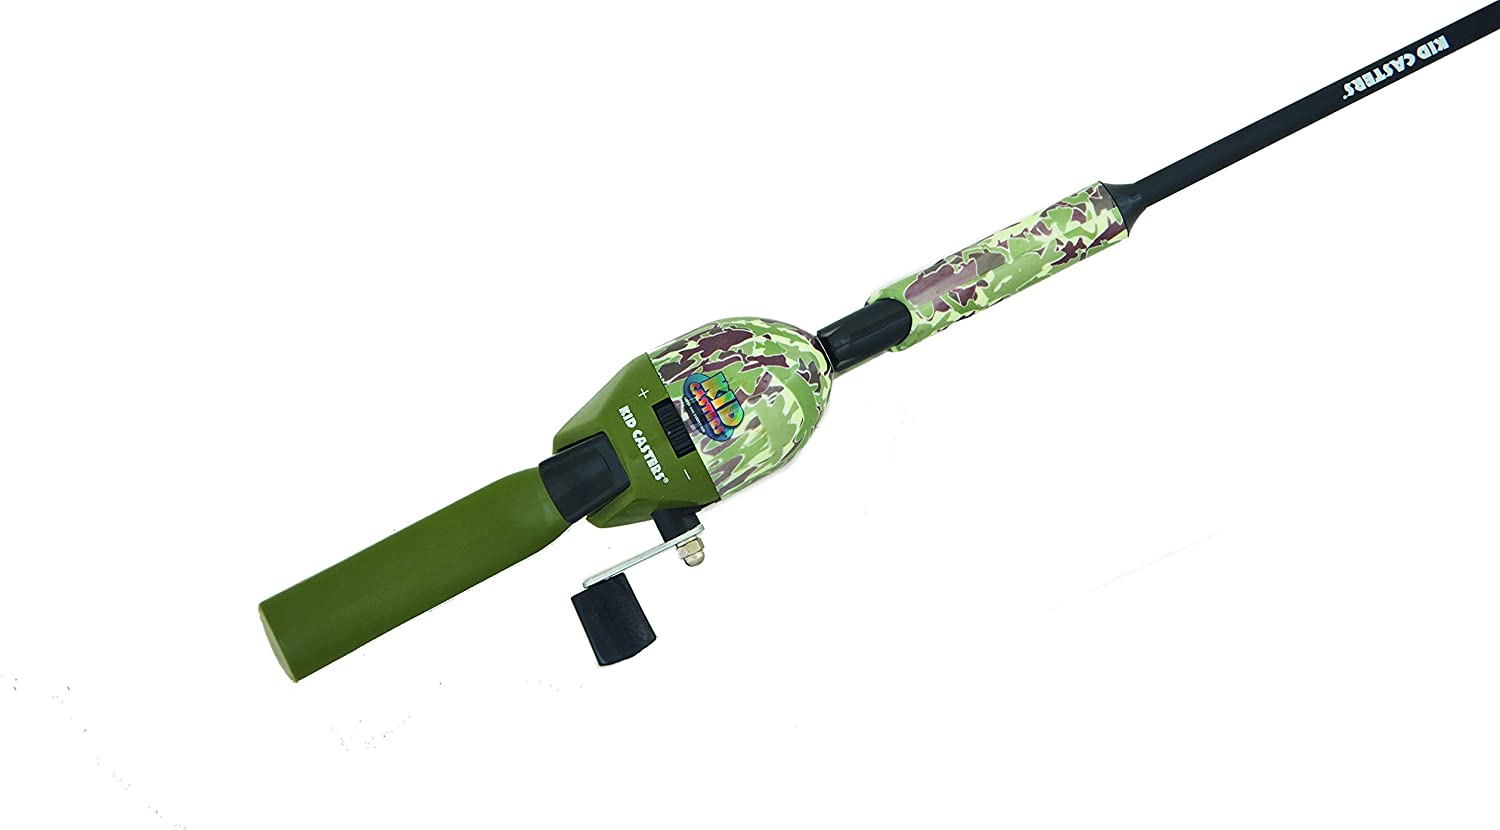 Includes Bobber Practice Casting Plug Push Button-Spincast Reel /& Safety Hook Kid Casters 34IN Tangle-Free Youth Kids Fishing Pole Fish Camo Pattern